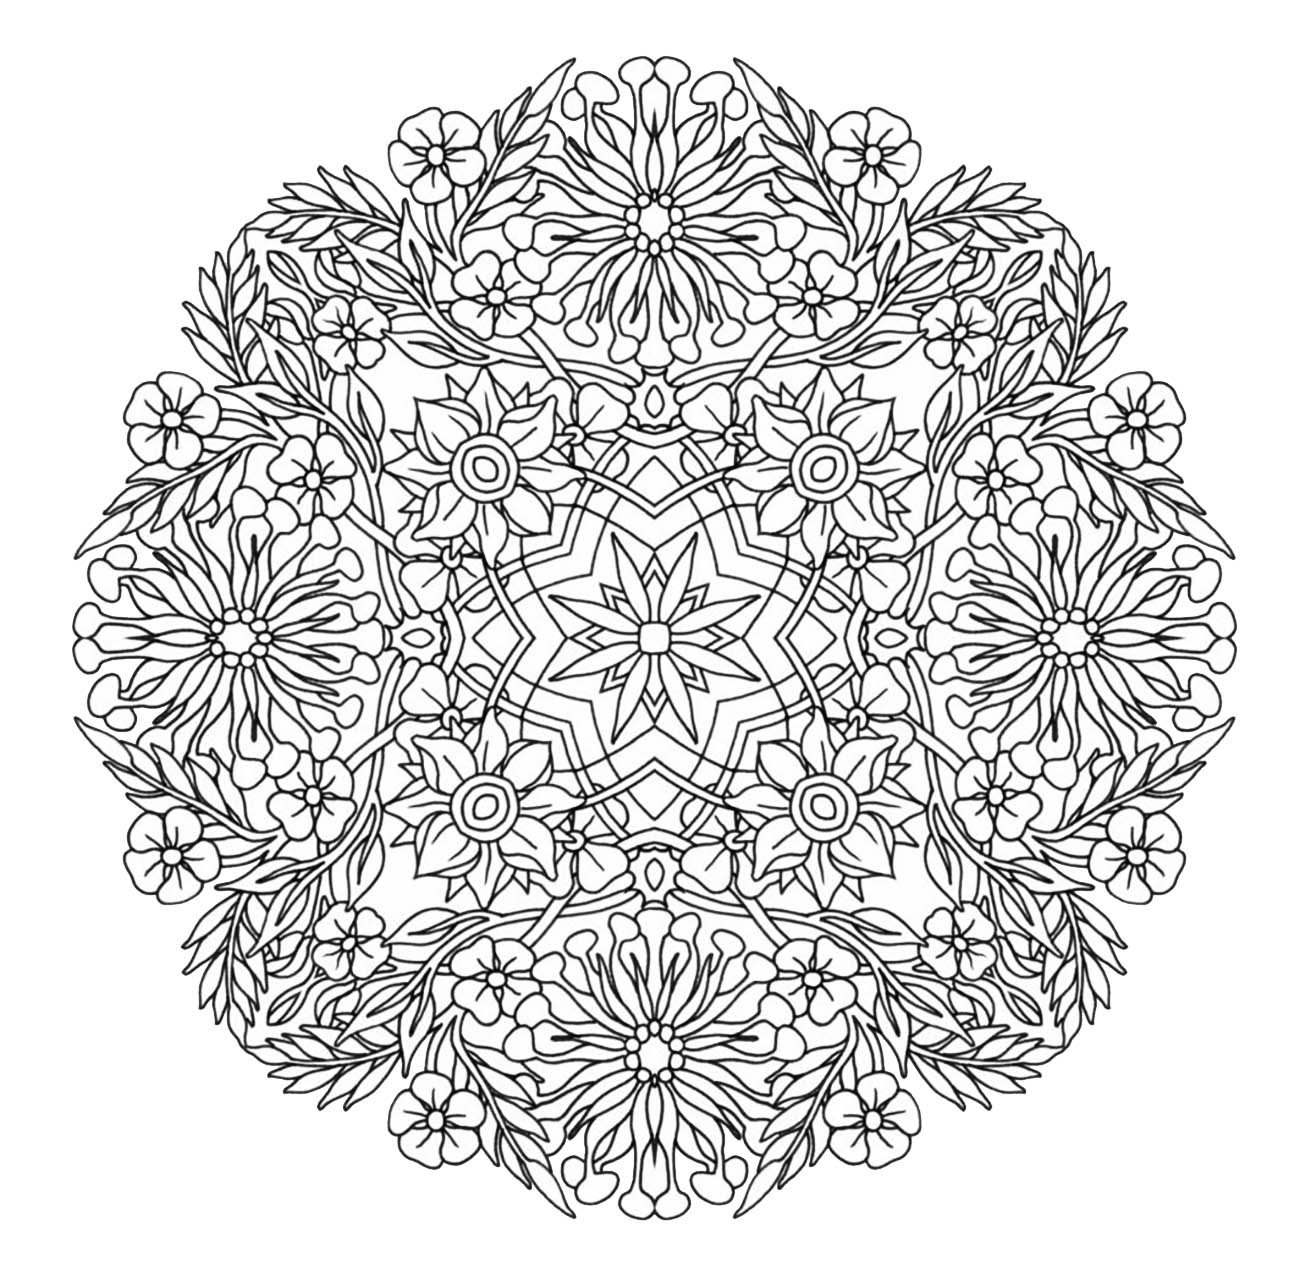 Mandala to download giant flowers with smart petals for Coloring pages for adults difficult flower